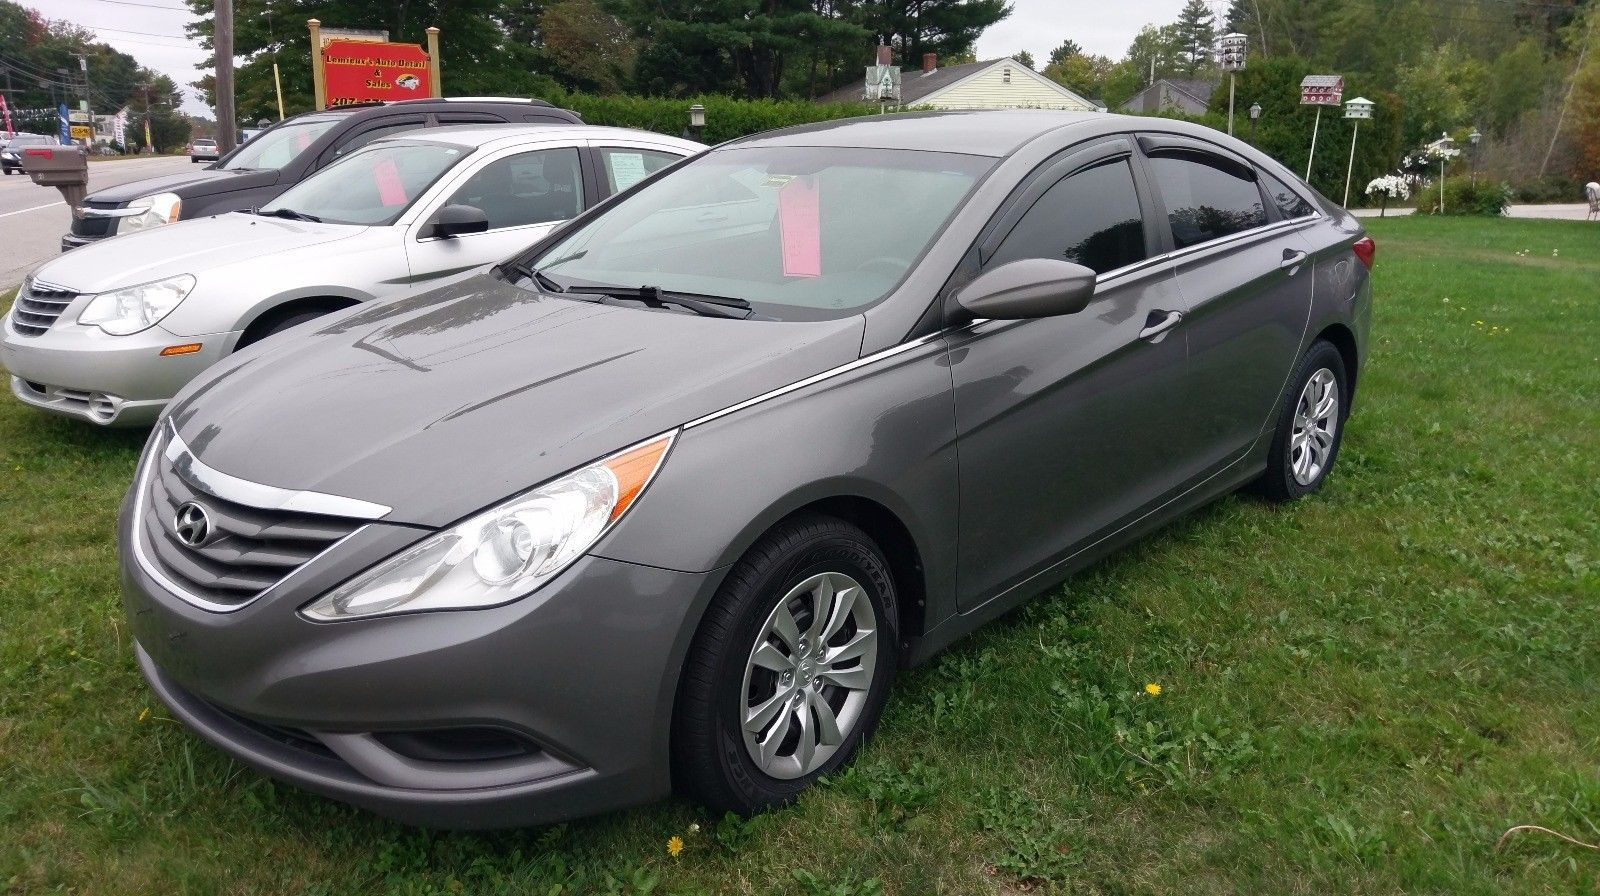 limited sonata s select auto the enlarged review to for hyundai not sale view like lg what photo turbo channel